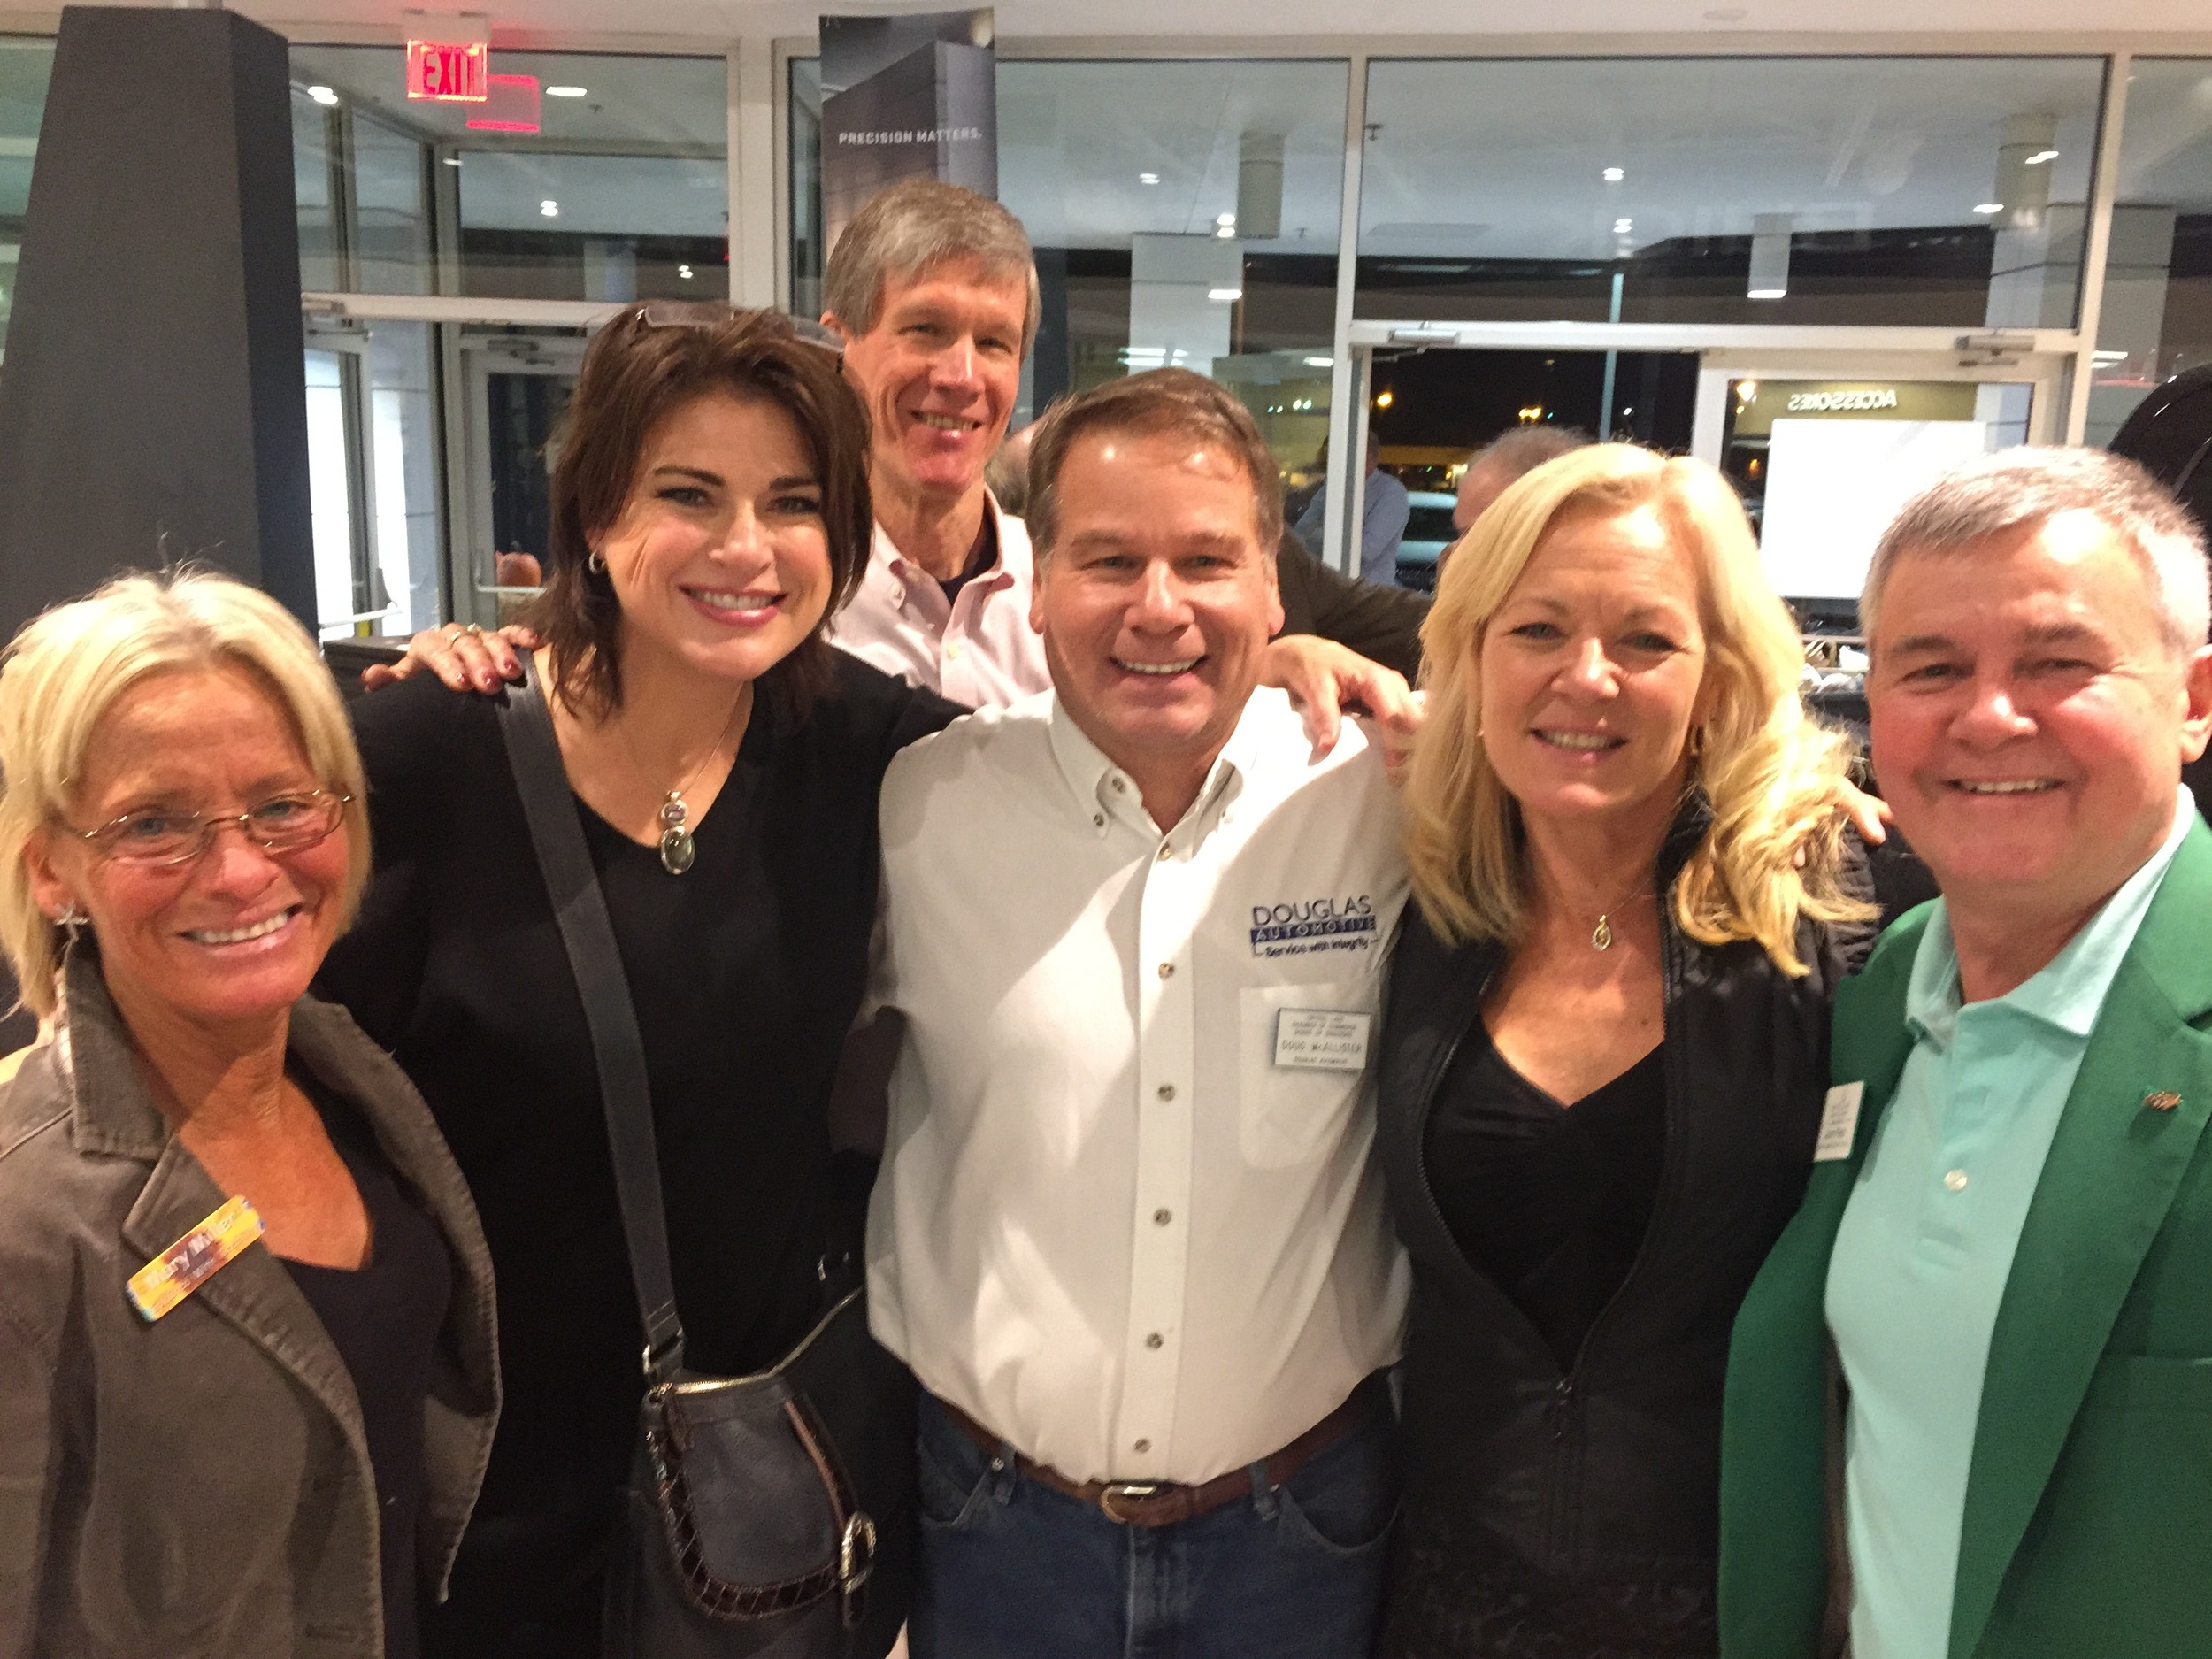 Mary Miller, Artist  Splashed with Creativity , Mary Koss, Voice Actor  Mary Says It All , Pete Luchinger  Isagenix , Doug McAllister owner  Douglas Automotive , Katie Van Diggelen, owner  Acheive Footwear , with John Pletz owner of  Servicemaster by Pletz